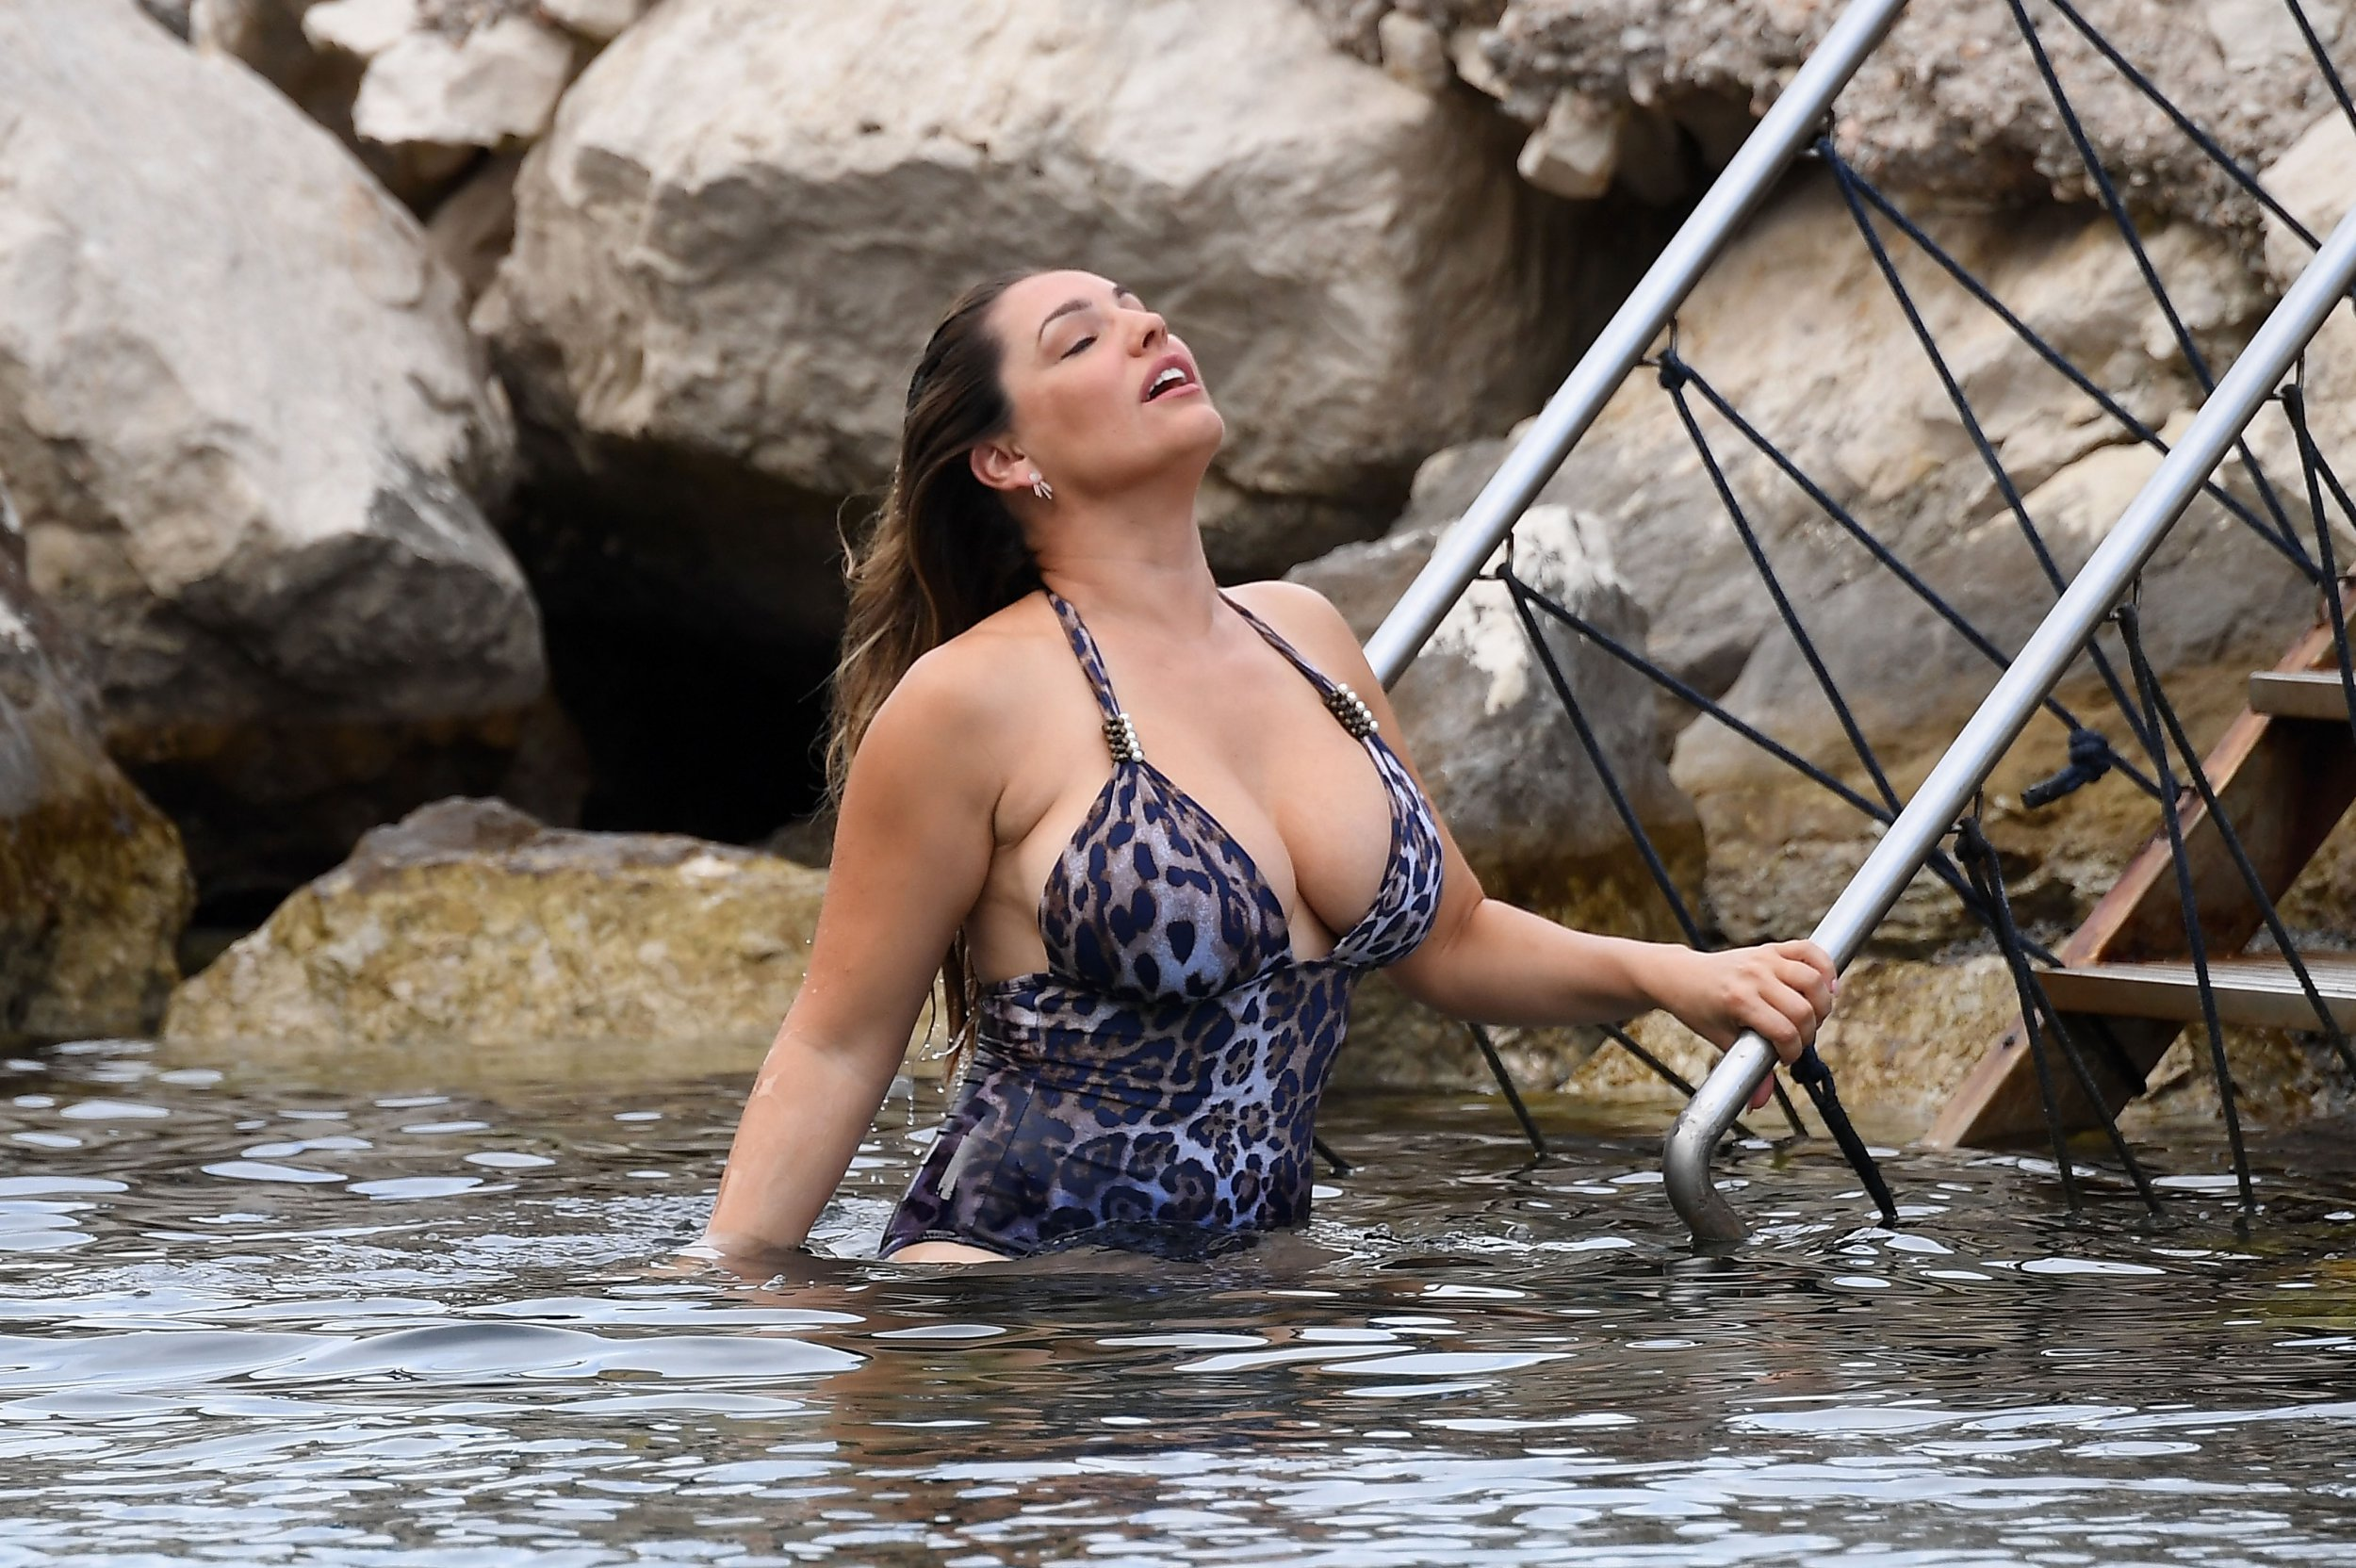 ISCHIA, ITALY - JULY 14: Jeremy Parisi and Kelly Brook are seen on July 14, 2016 in Ischia, Italy. (Photo by Pretaflash/GC Images)